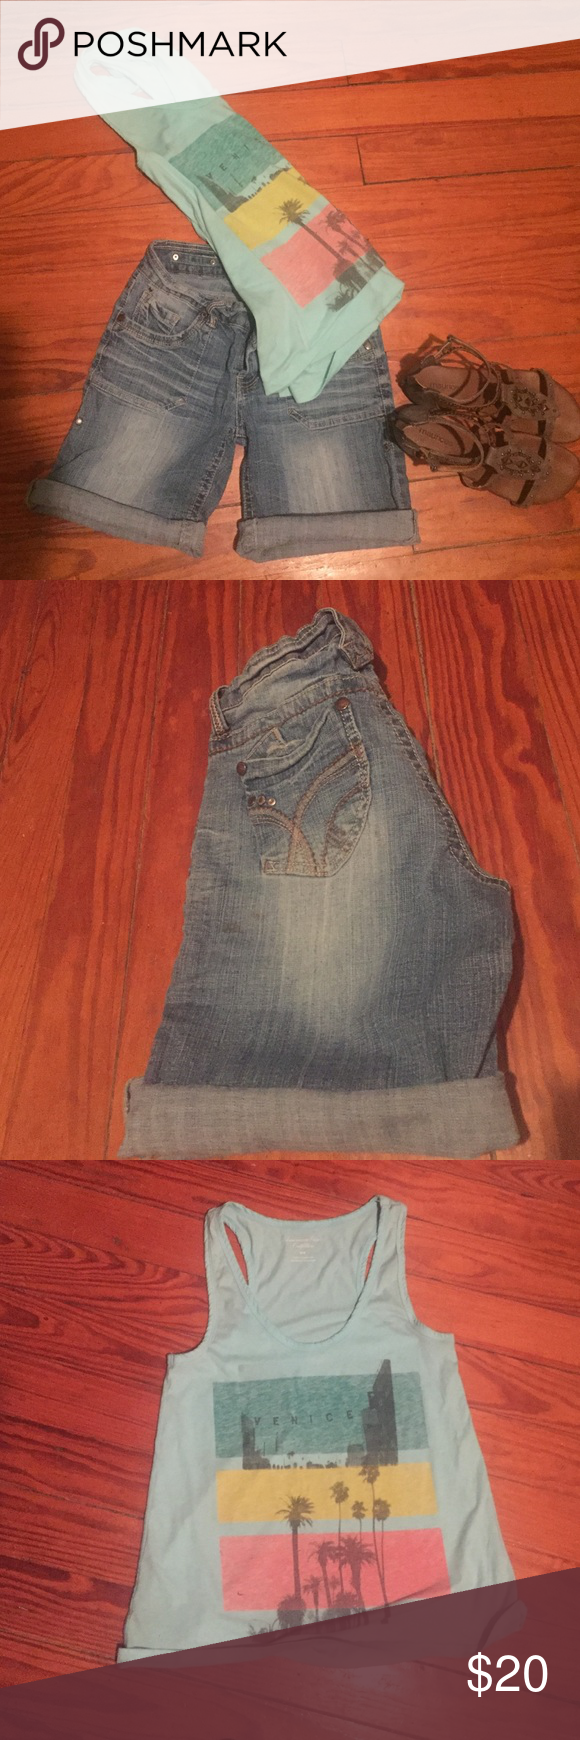 Shorts and tank Pork chop style hydraulic shorts. Can be worn rolled or unrolled sz 5/6 (they are stretchy and fit nice) $12. A&E tank, worn maybe 3 times, was a little to oversized for me but looks super cute with loud bralette sz Med $10. Purchase both for $20 American Eagle Outfitters Tops Tank Tops